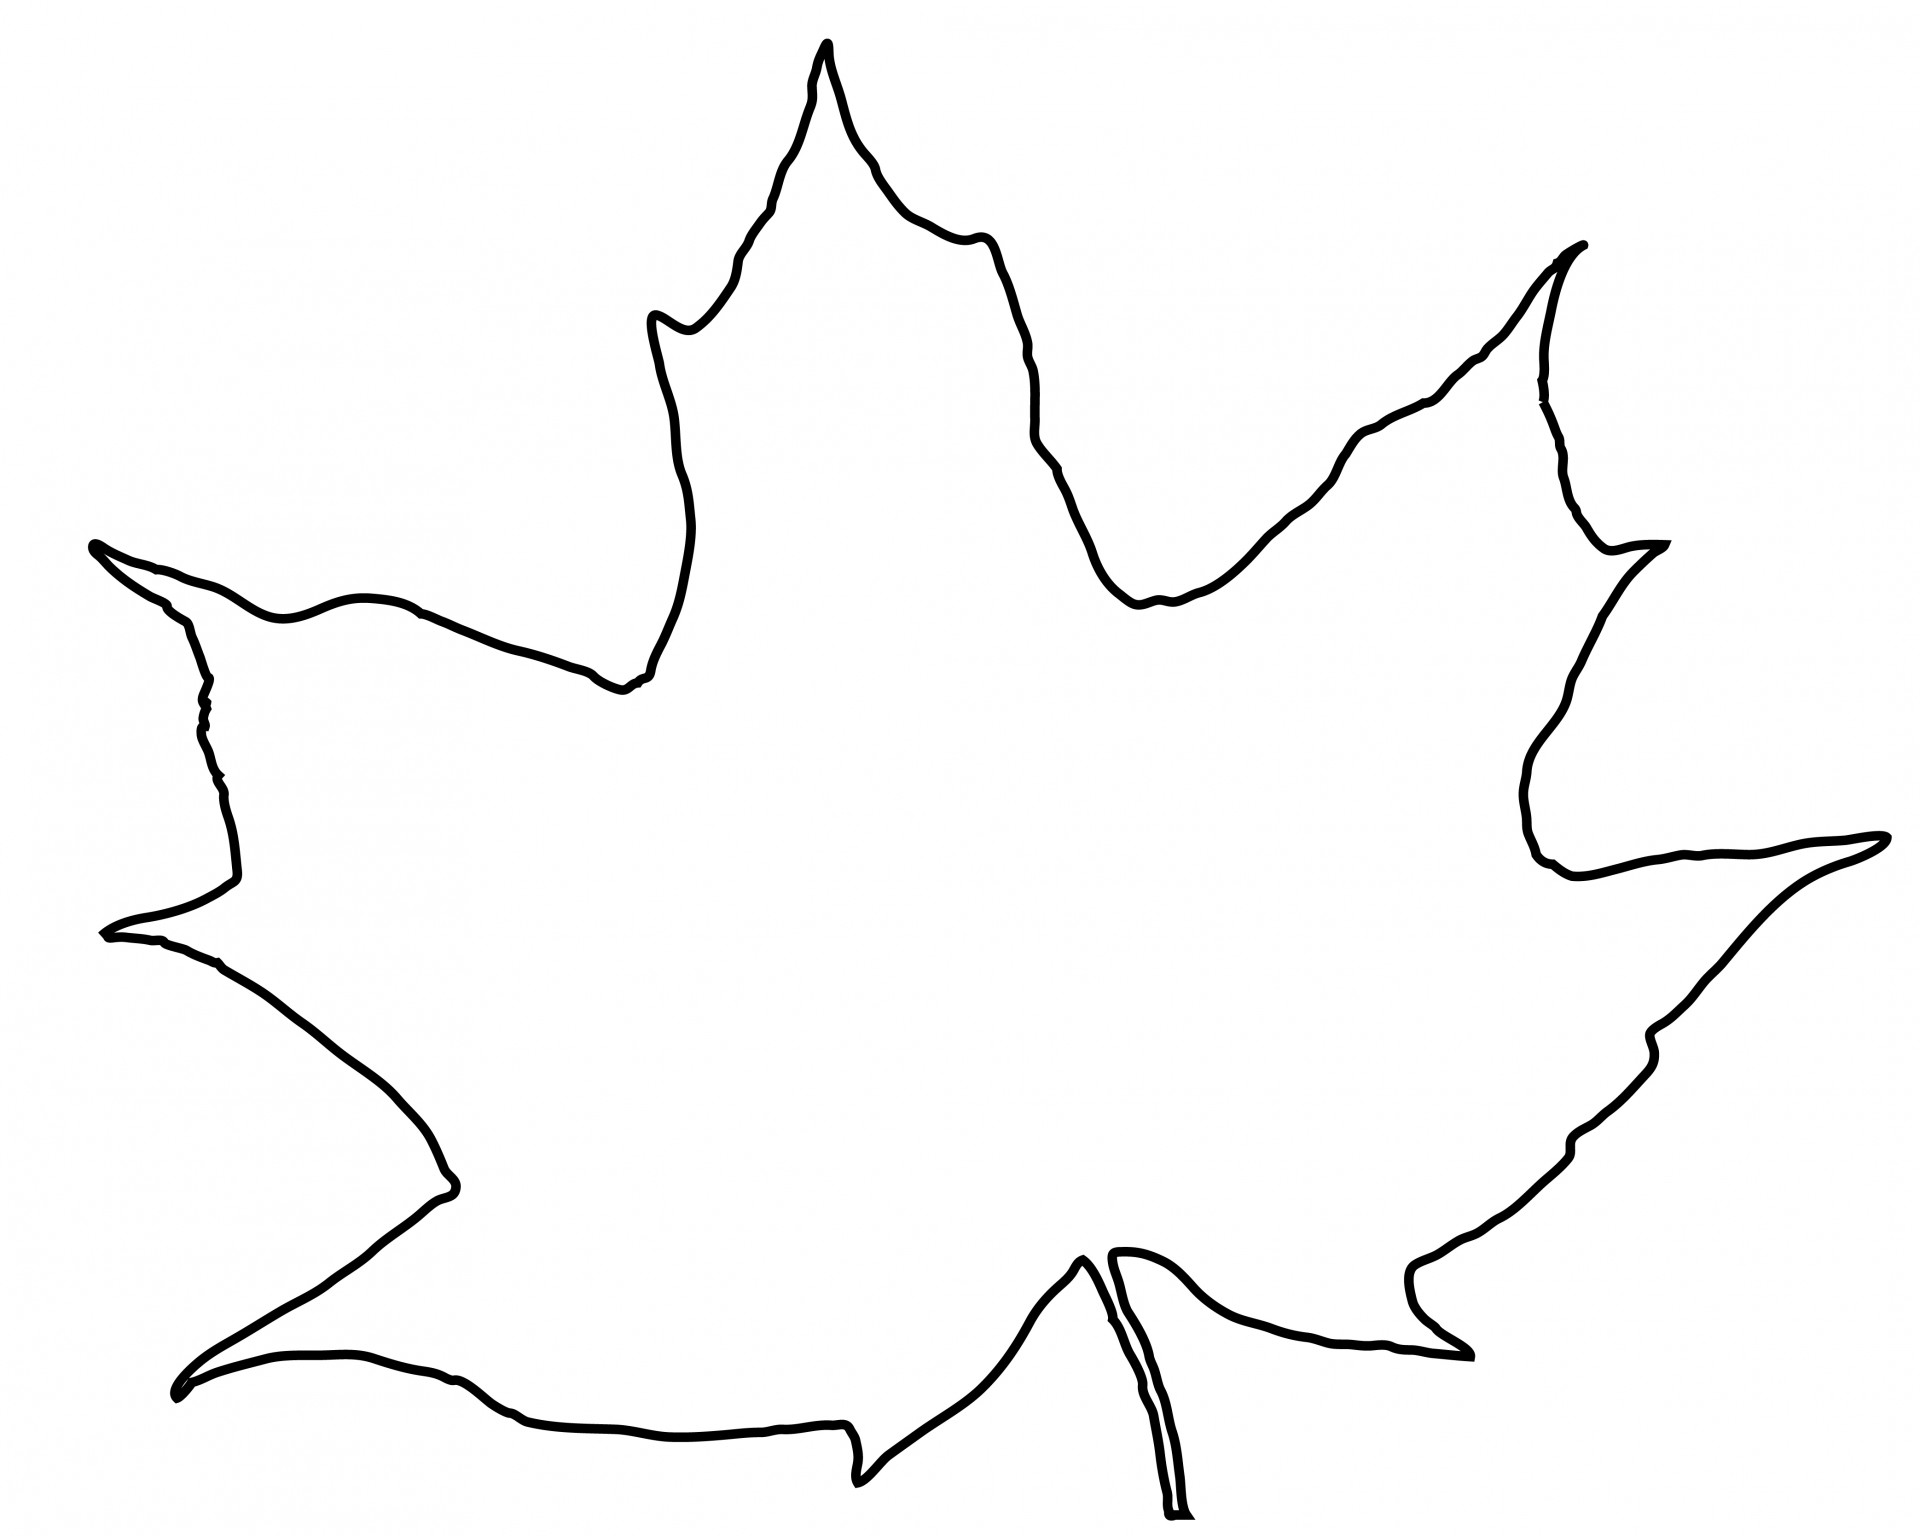 Eucalyptus Leaf Clipart   Free download on ClipArtMag